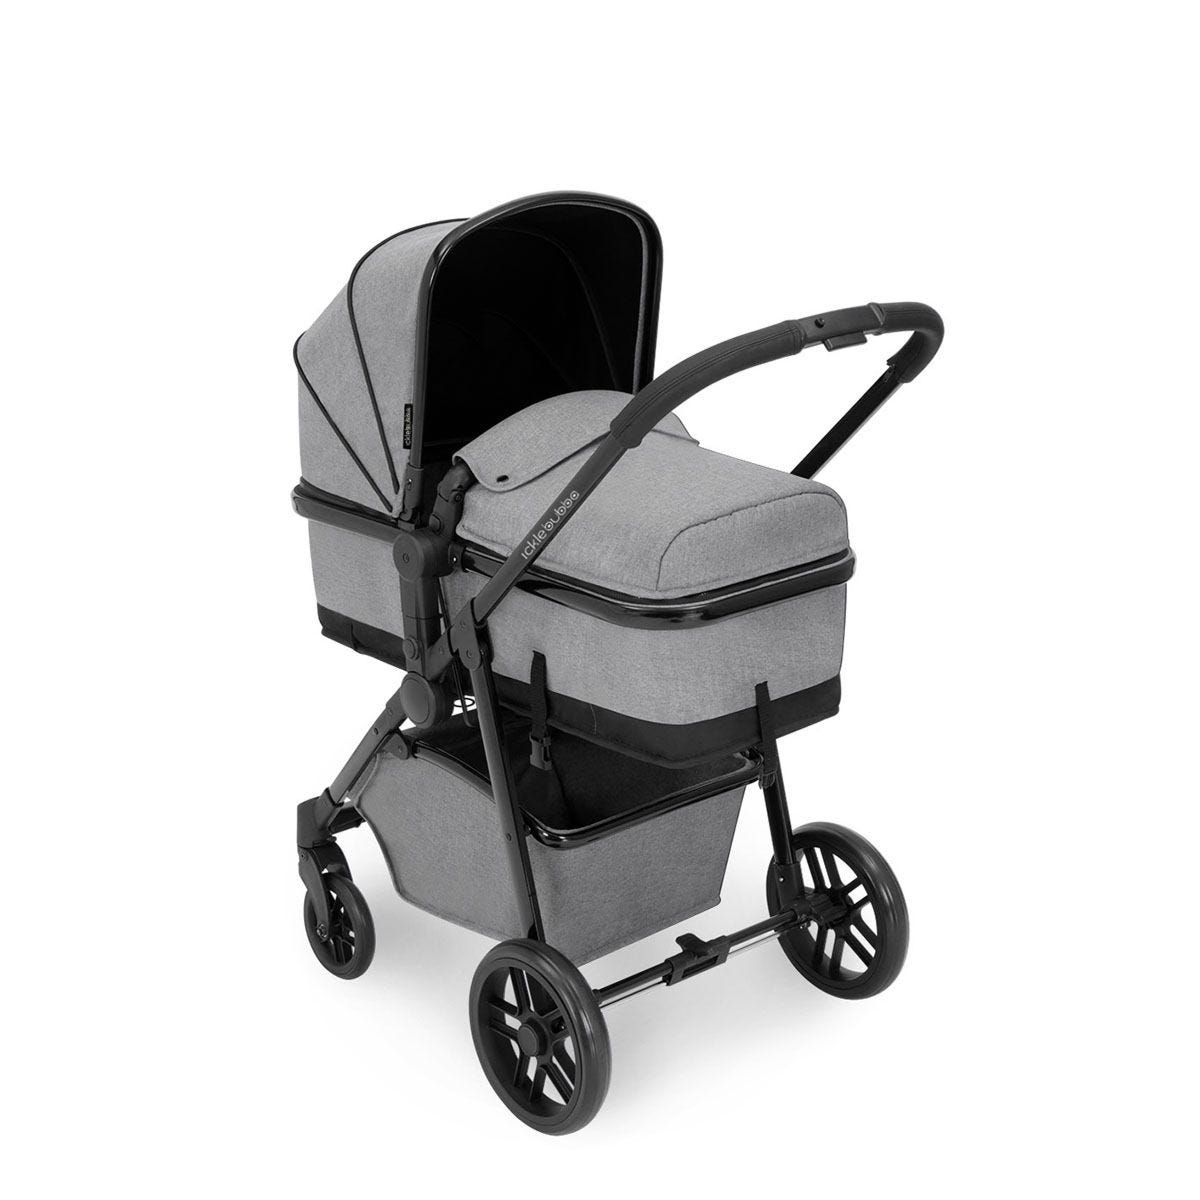 Ickle Bubba Moon 3 in 1 Travel System - Space Grey on Black with Black Handles